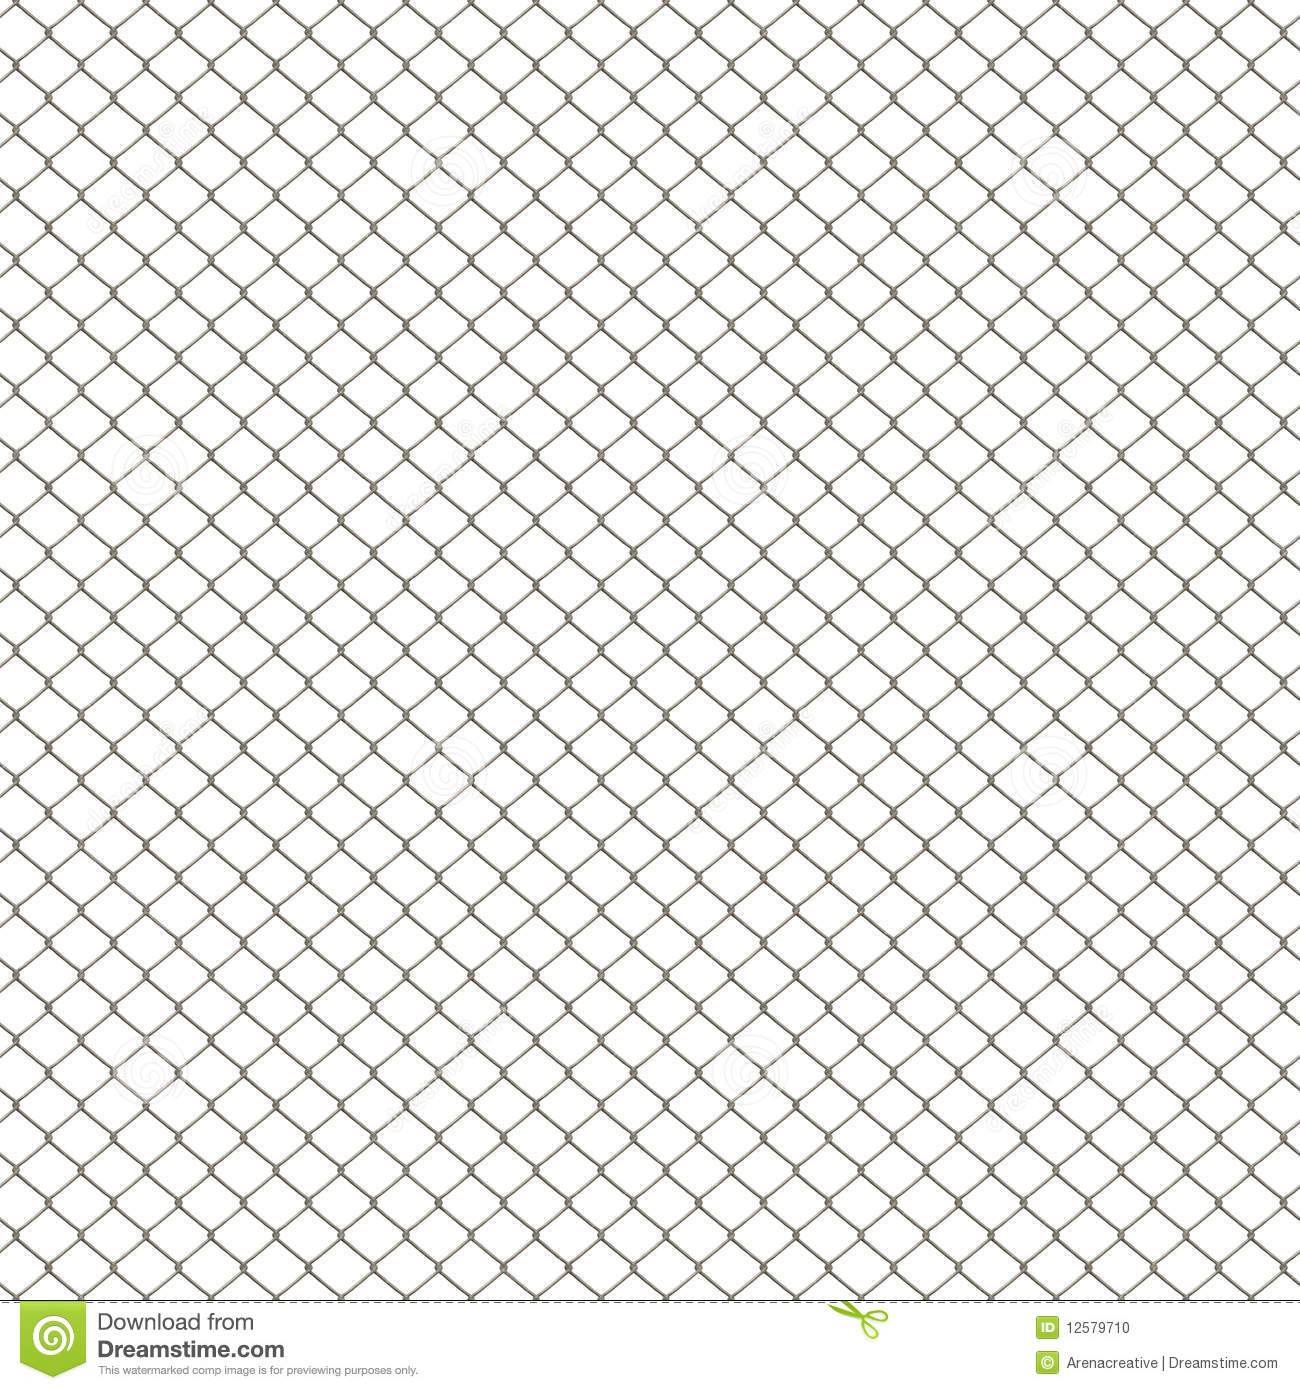 3D chain link fence texture isolated over white. This tiles ...